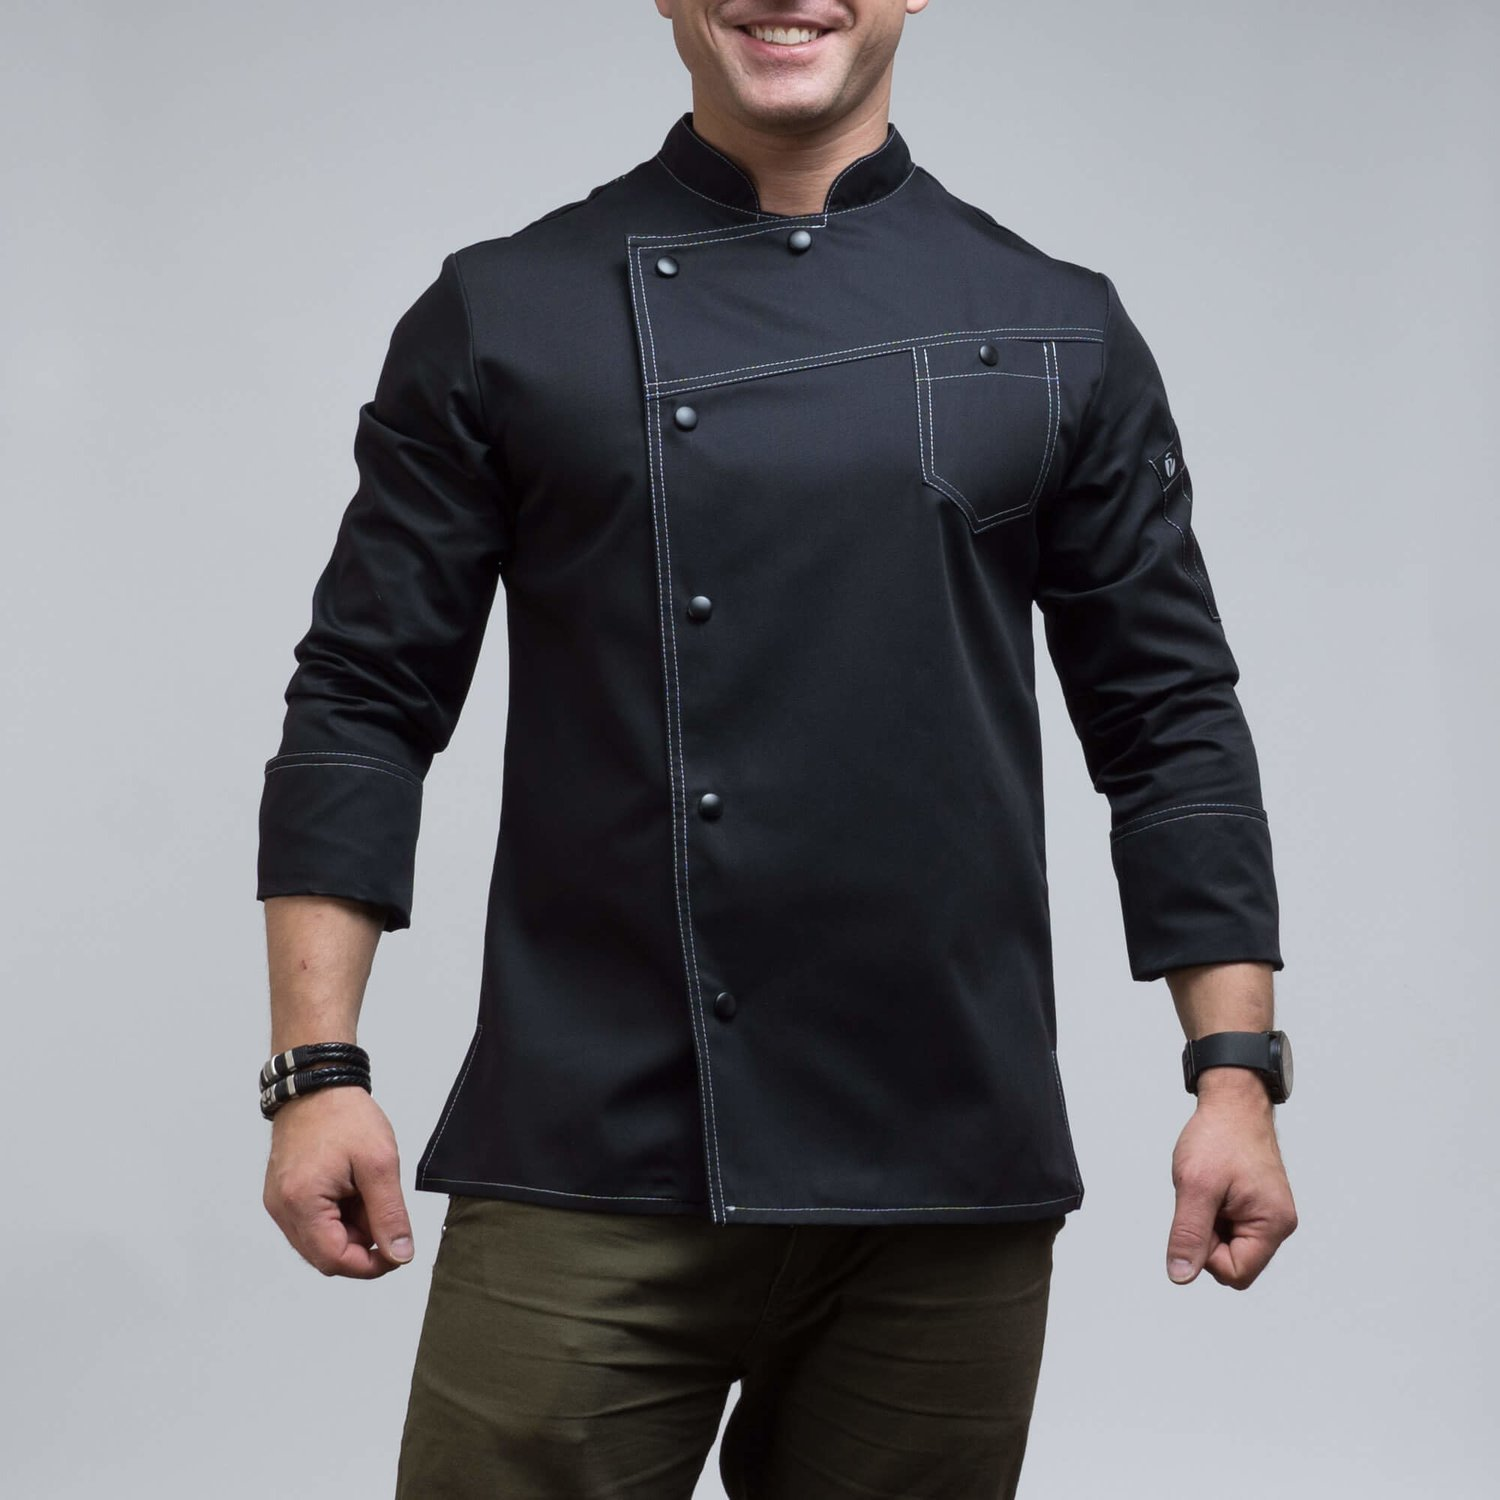 140BLACK - CHEF'S JACKET